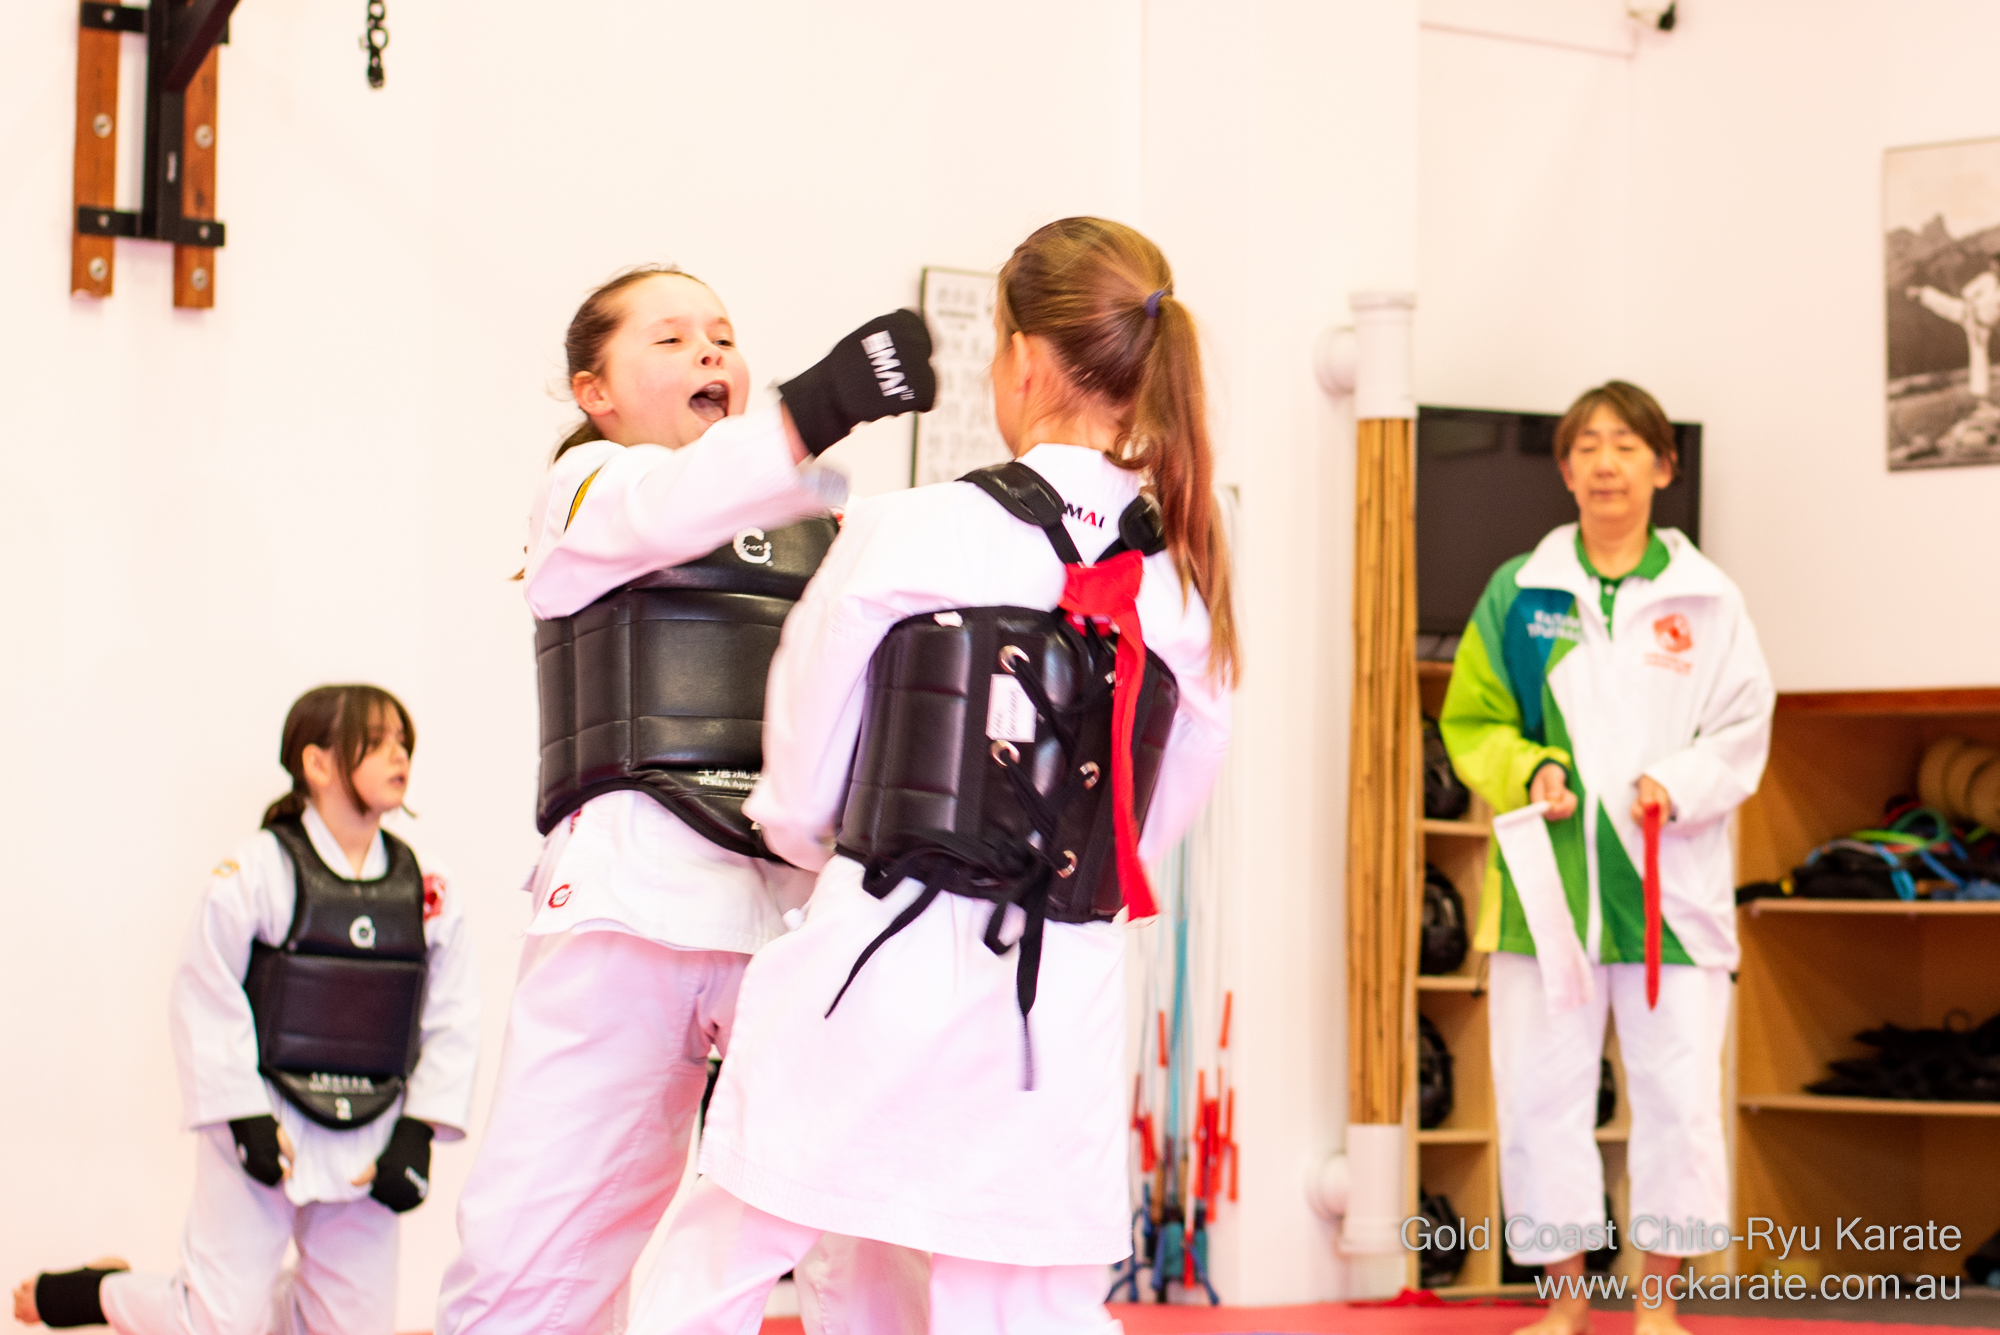 You are currently viewing 2021 GC Karate Competition